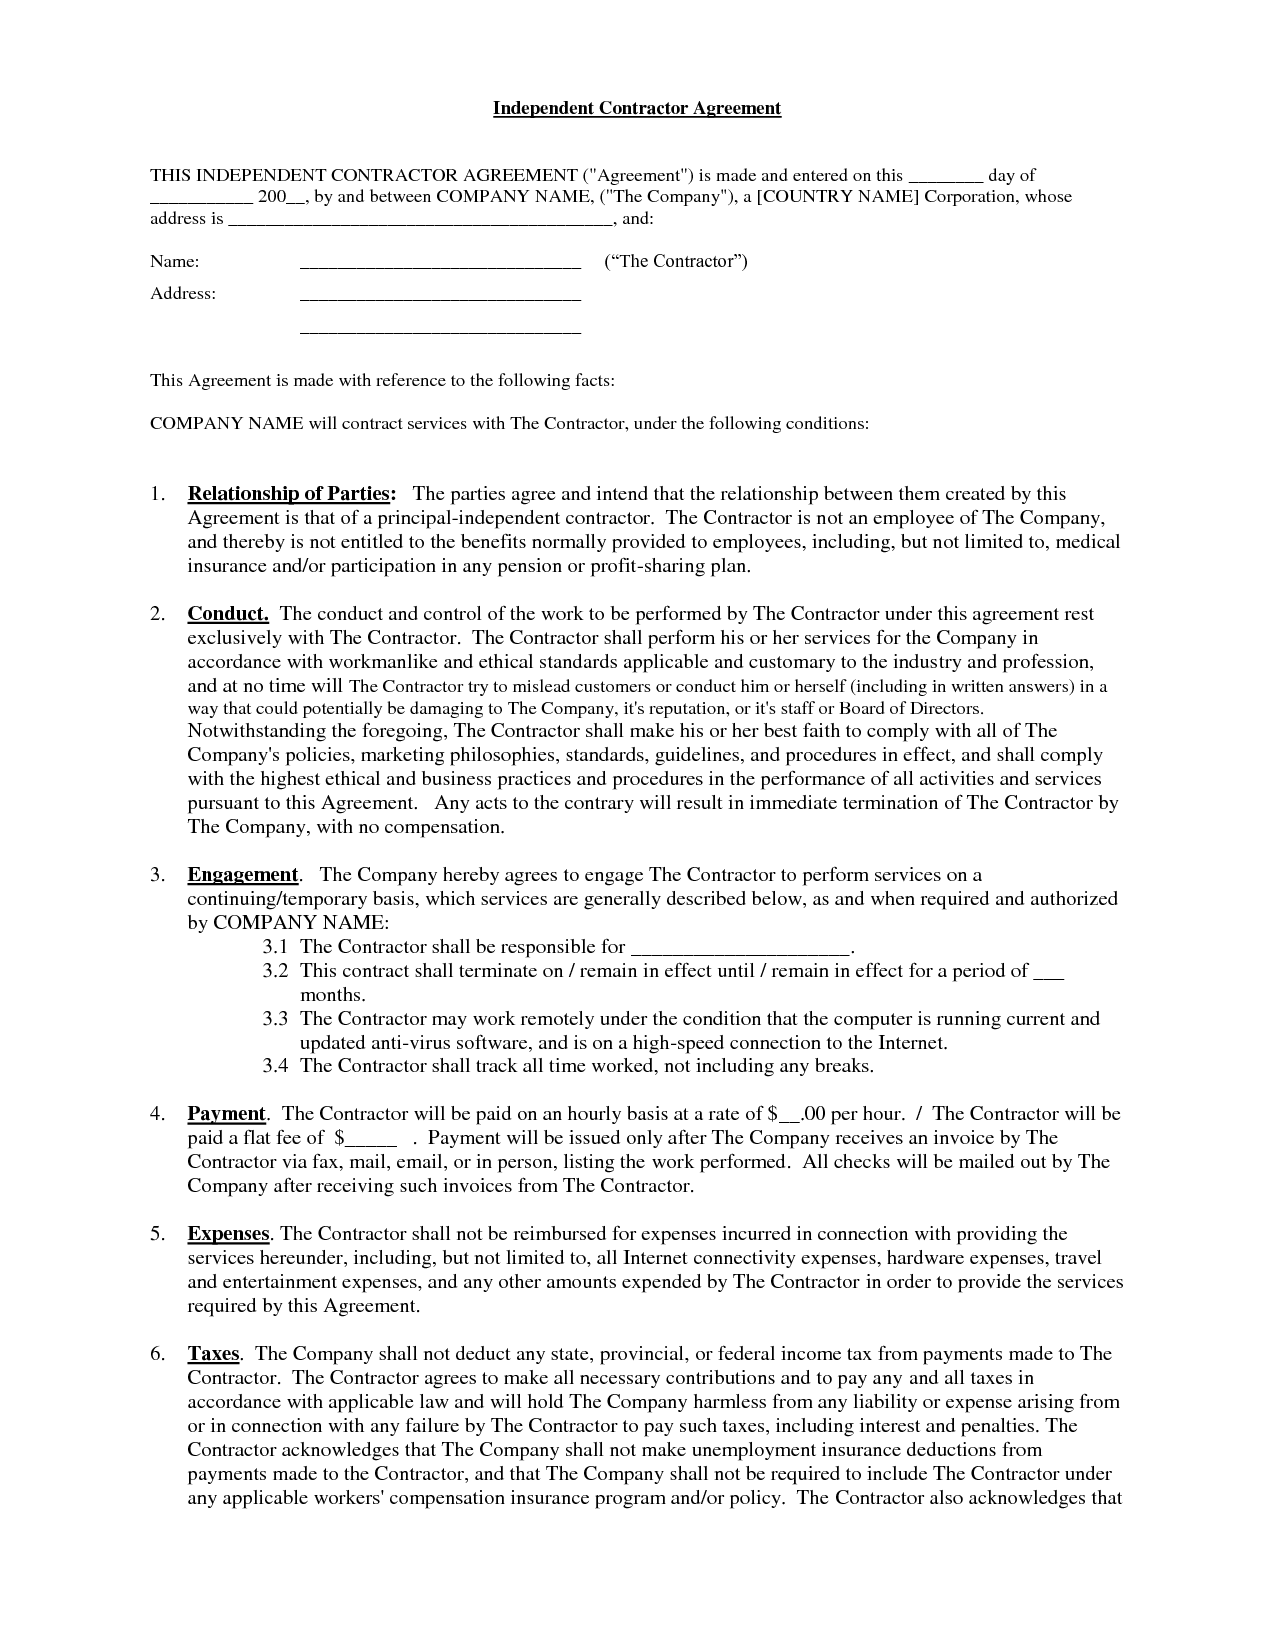 Independent Contractor Contract By Brittanygibbons